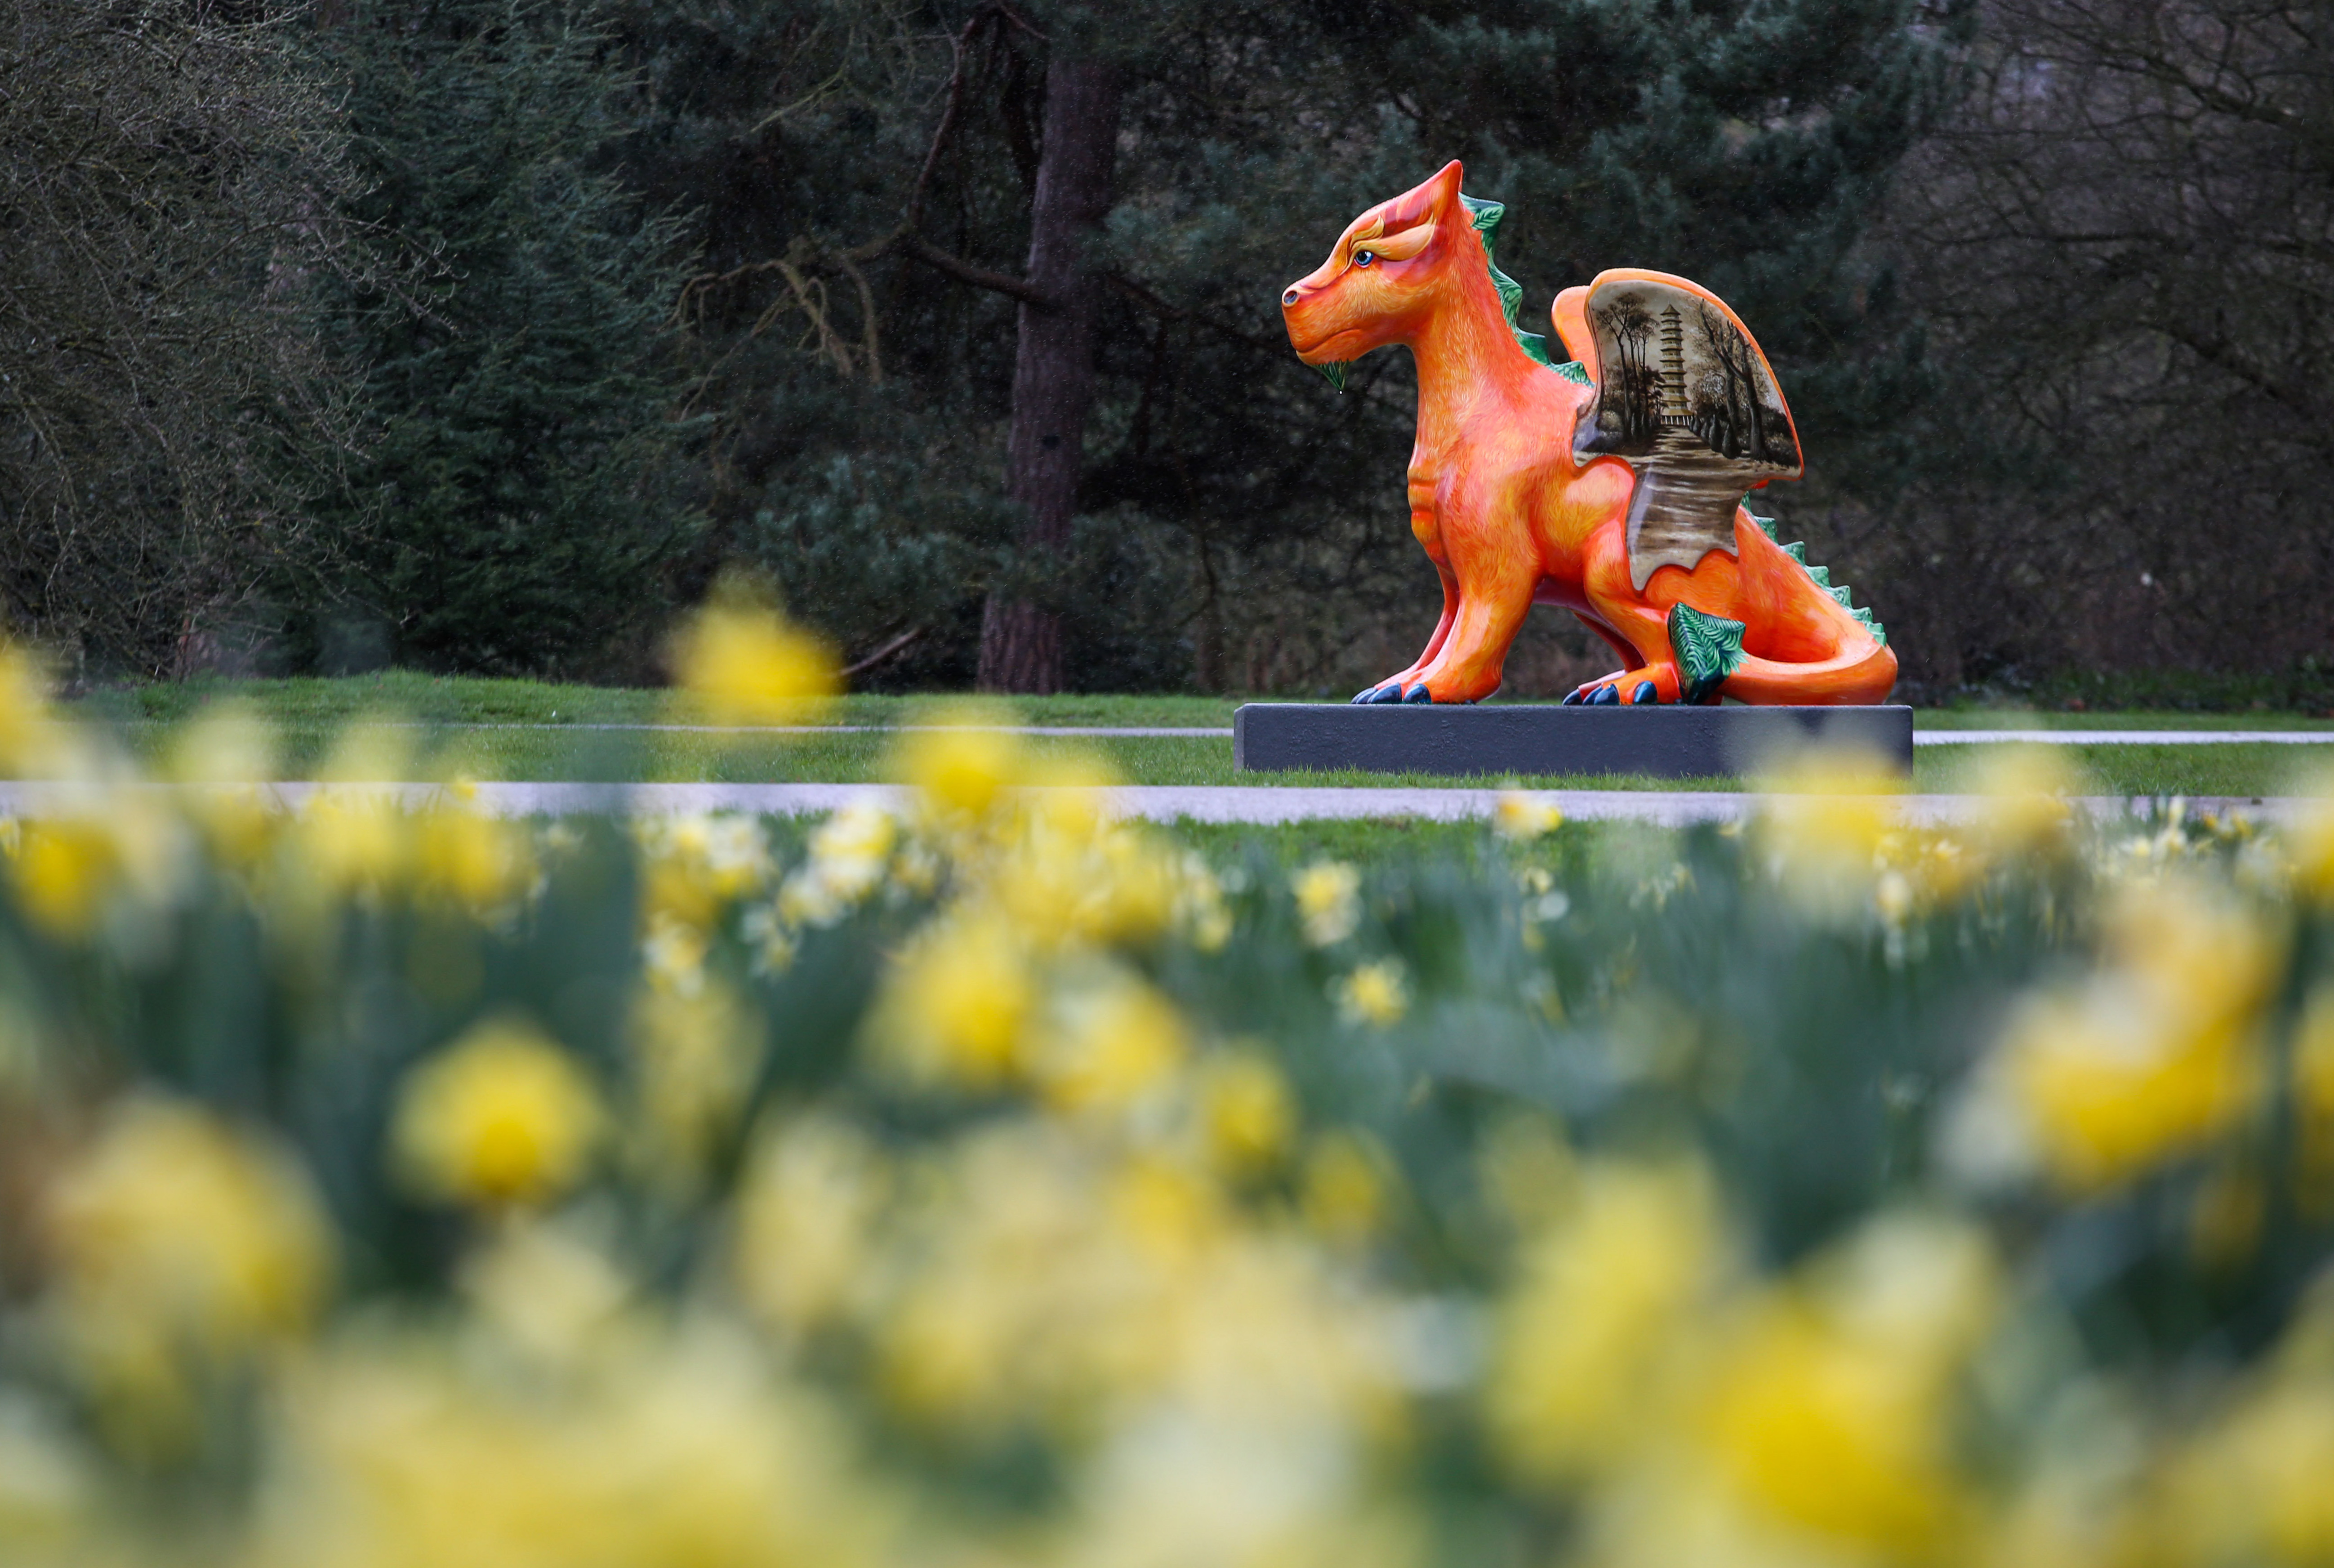 Kew Gardens new Here Be Dragons trail which runs from March 30 to September 30 2018. Here Be Dragons began in 2017 with a competition run by Blue Peter to design a dragon. The five top runner-up designs have been created into dragon sculptures by Wild in Art artists. March 29 2018.